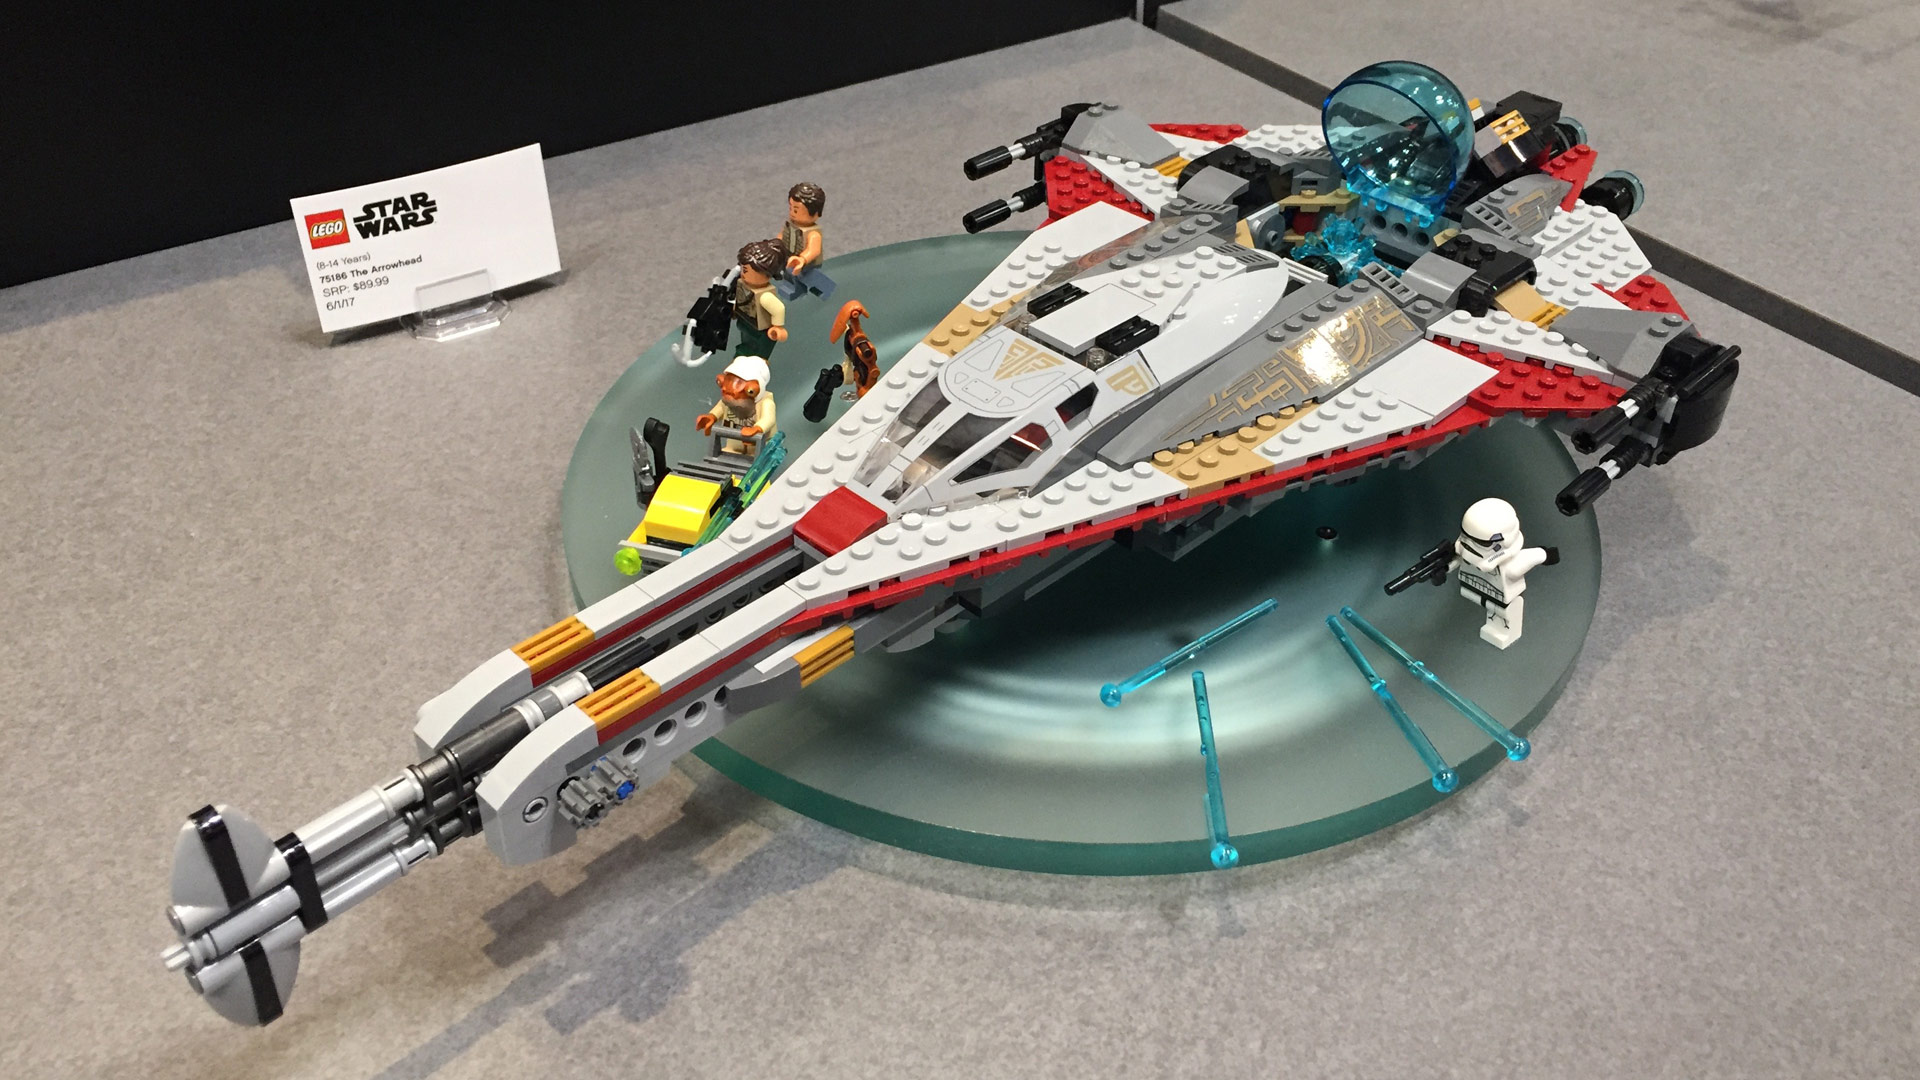 LEGO Star Wars Set 75186 The Arrowhead at Toy Fair 2017